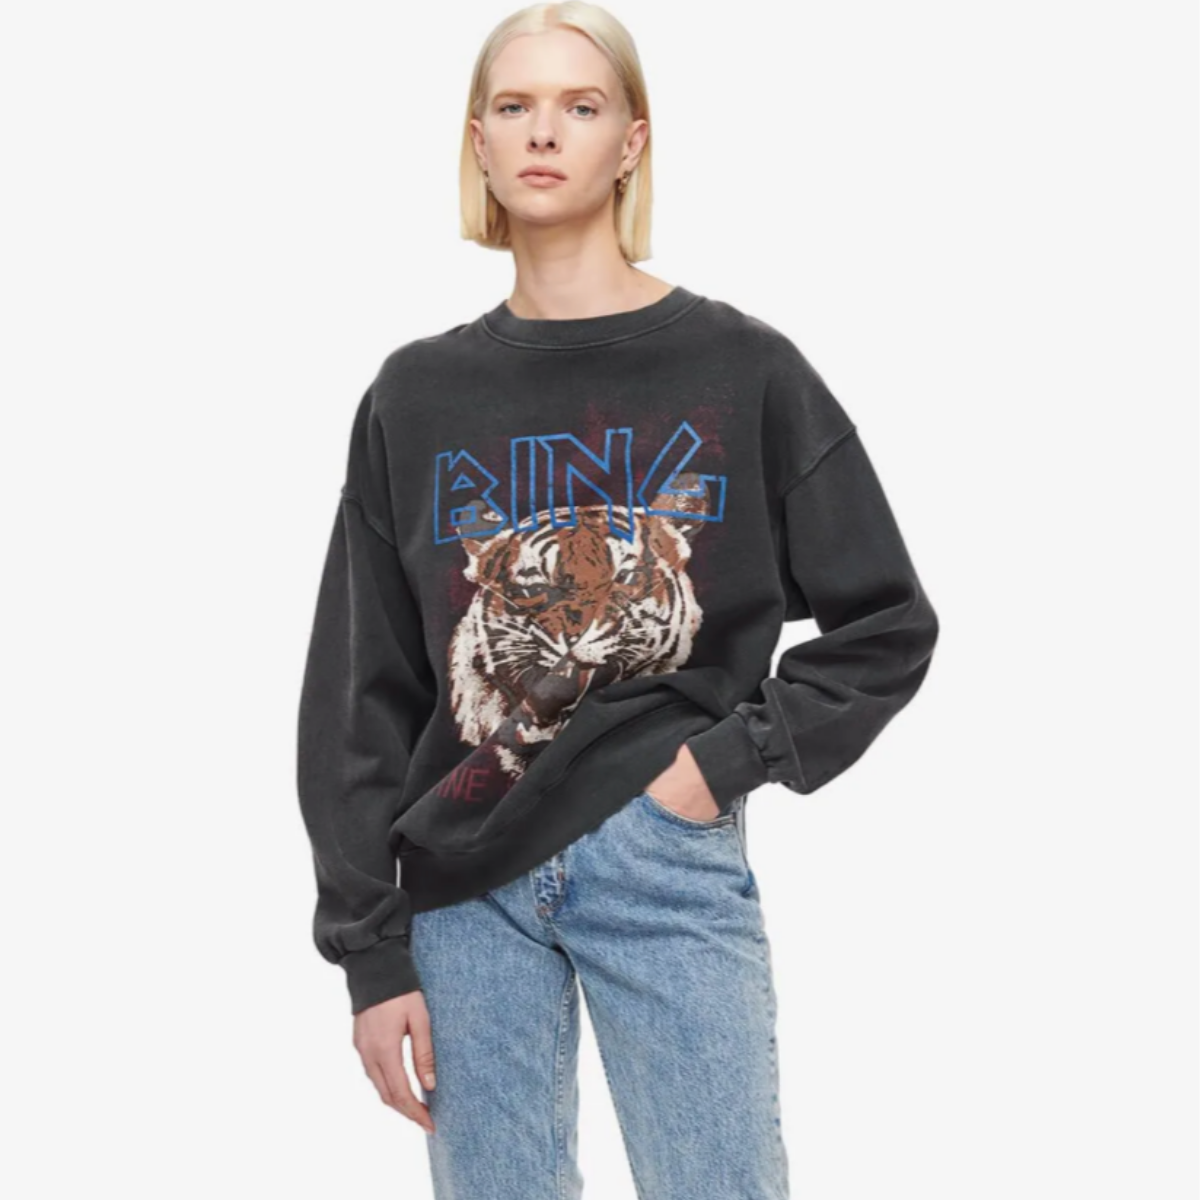 Anine Bing one-of-a-kind garment-dyed vintage-inspired crew neck graphic sweater